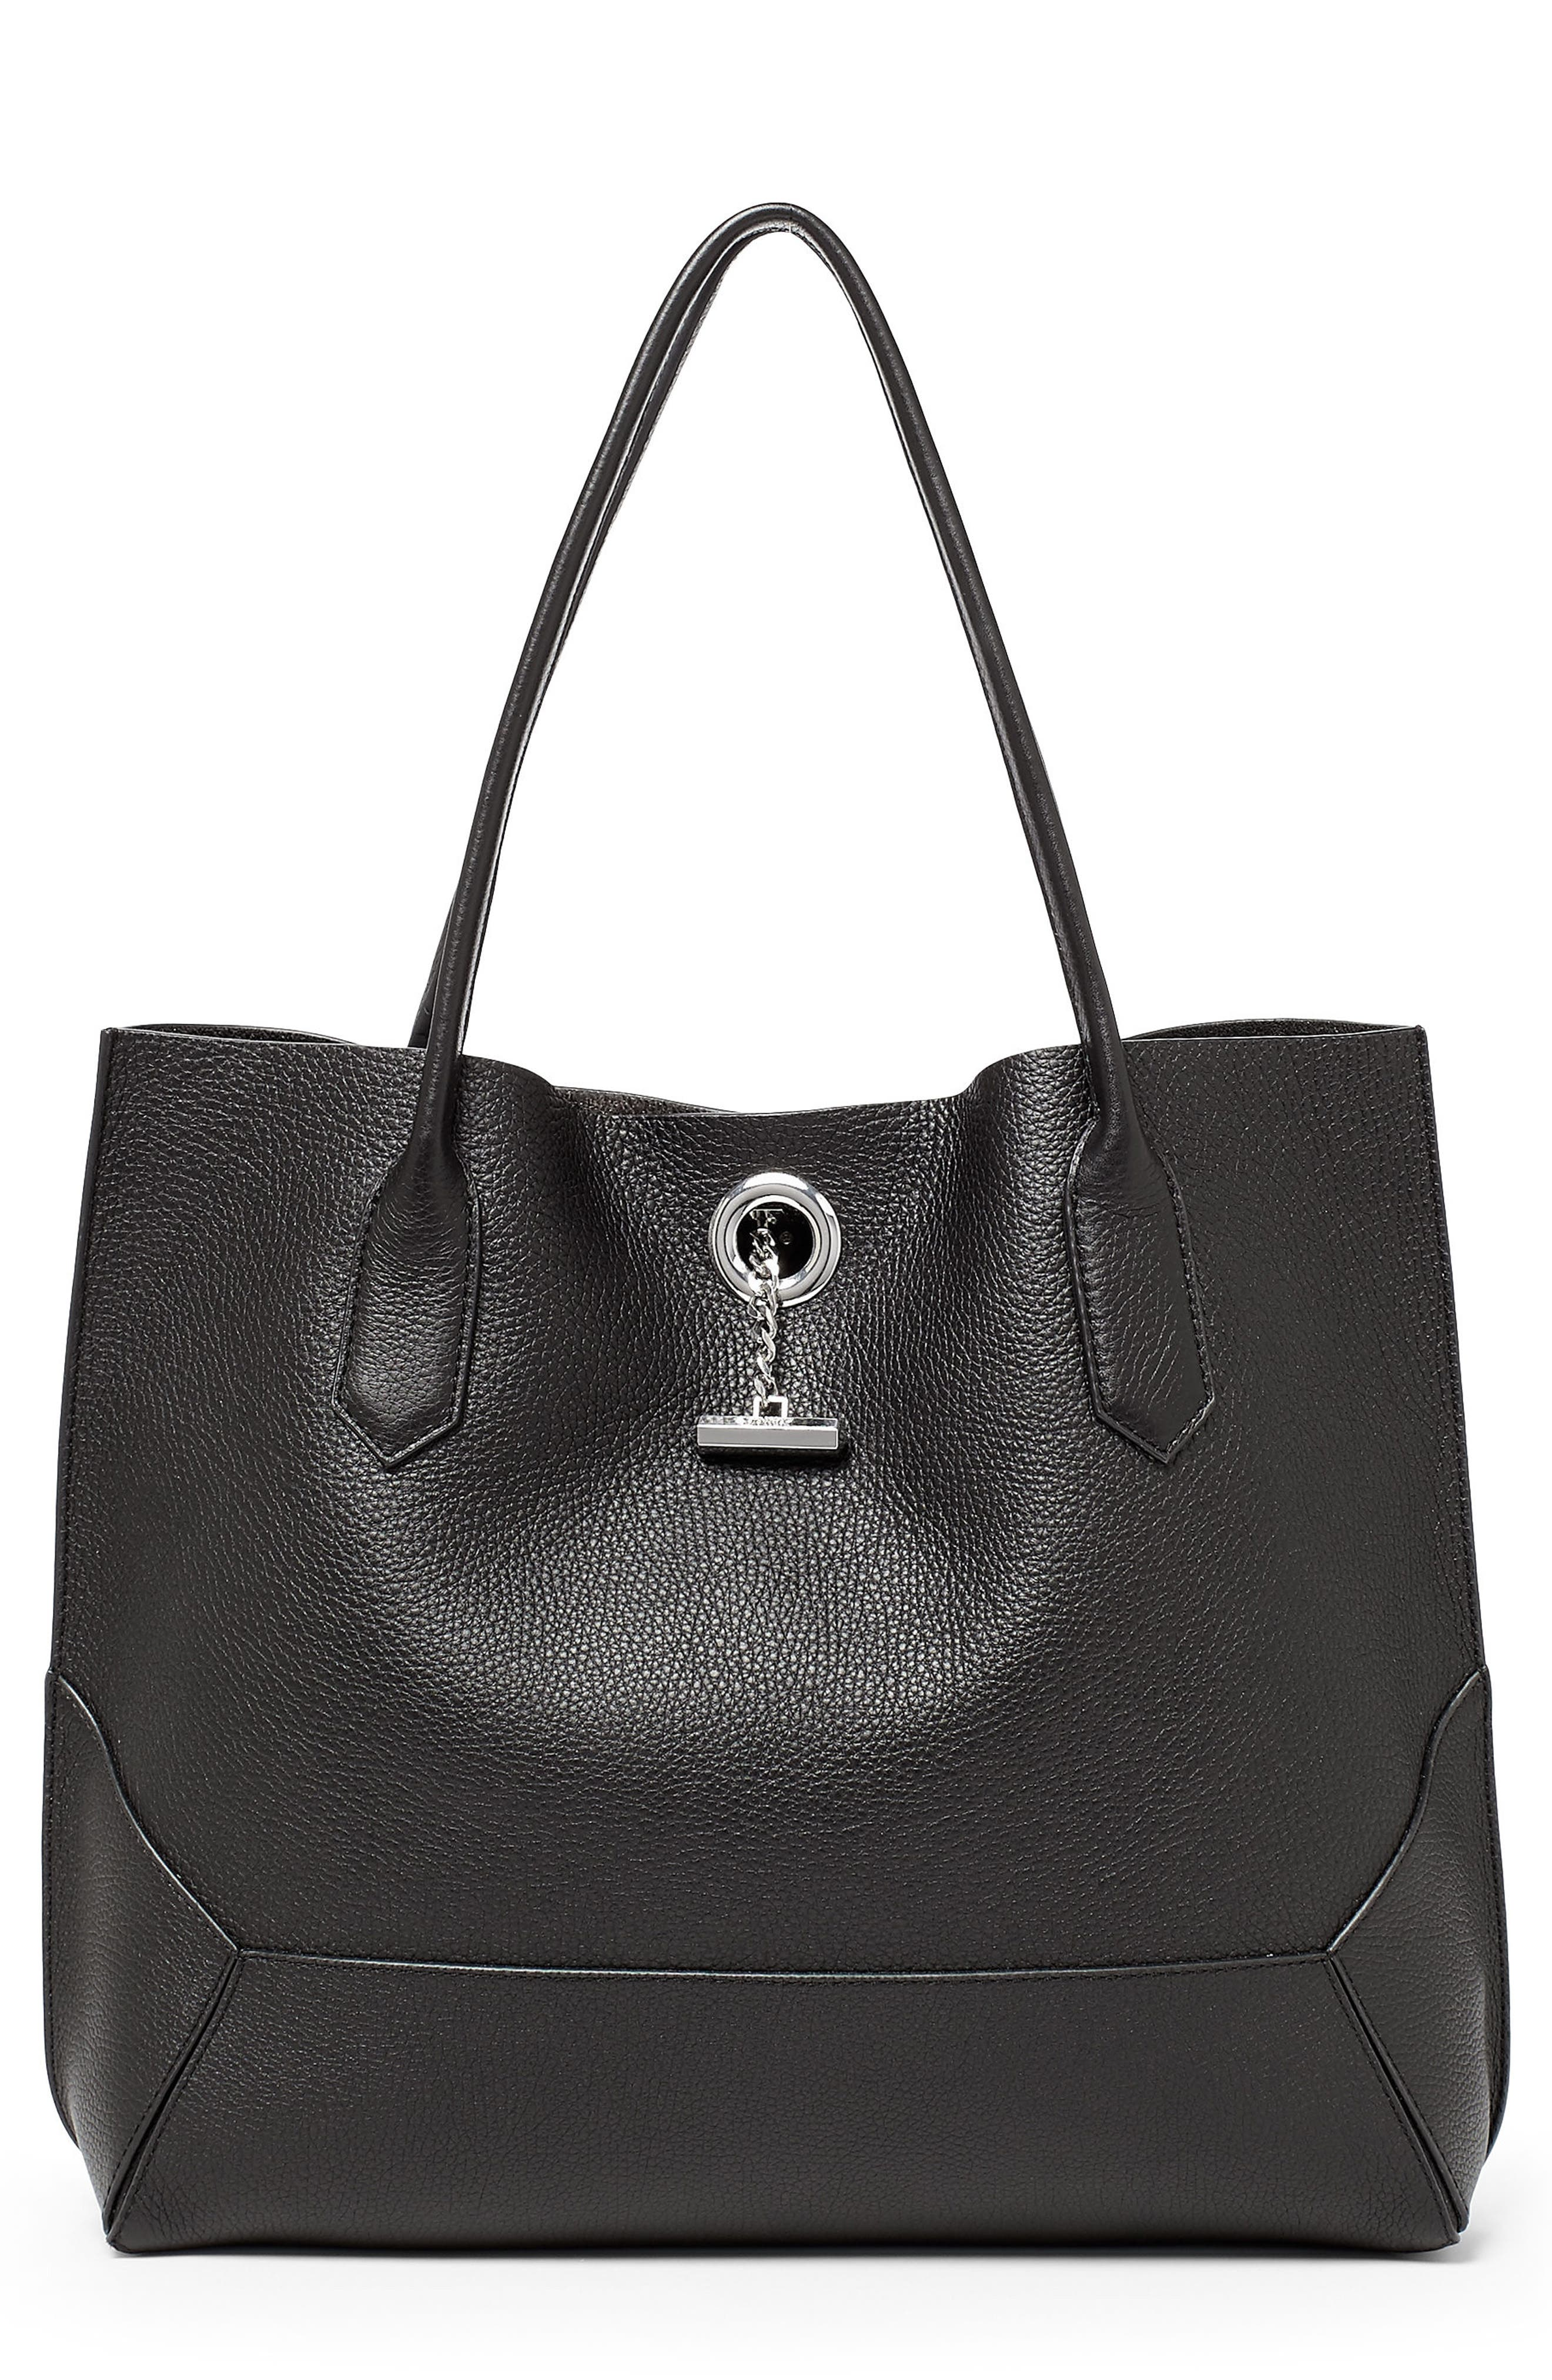 Waverly Leather Tote,                             Main thumbnail 1, color,                             001